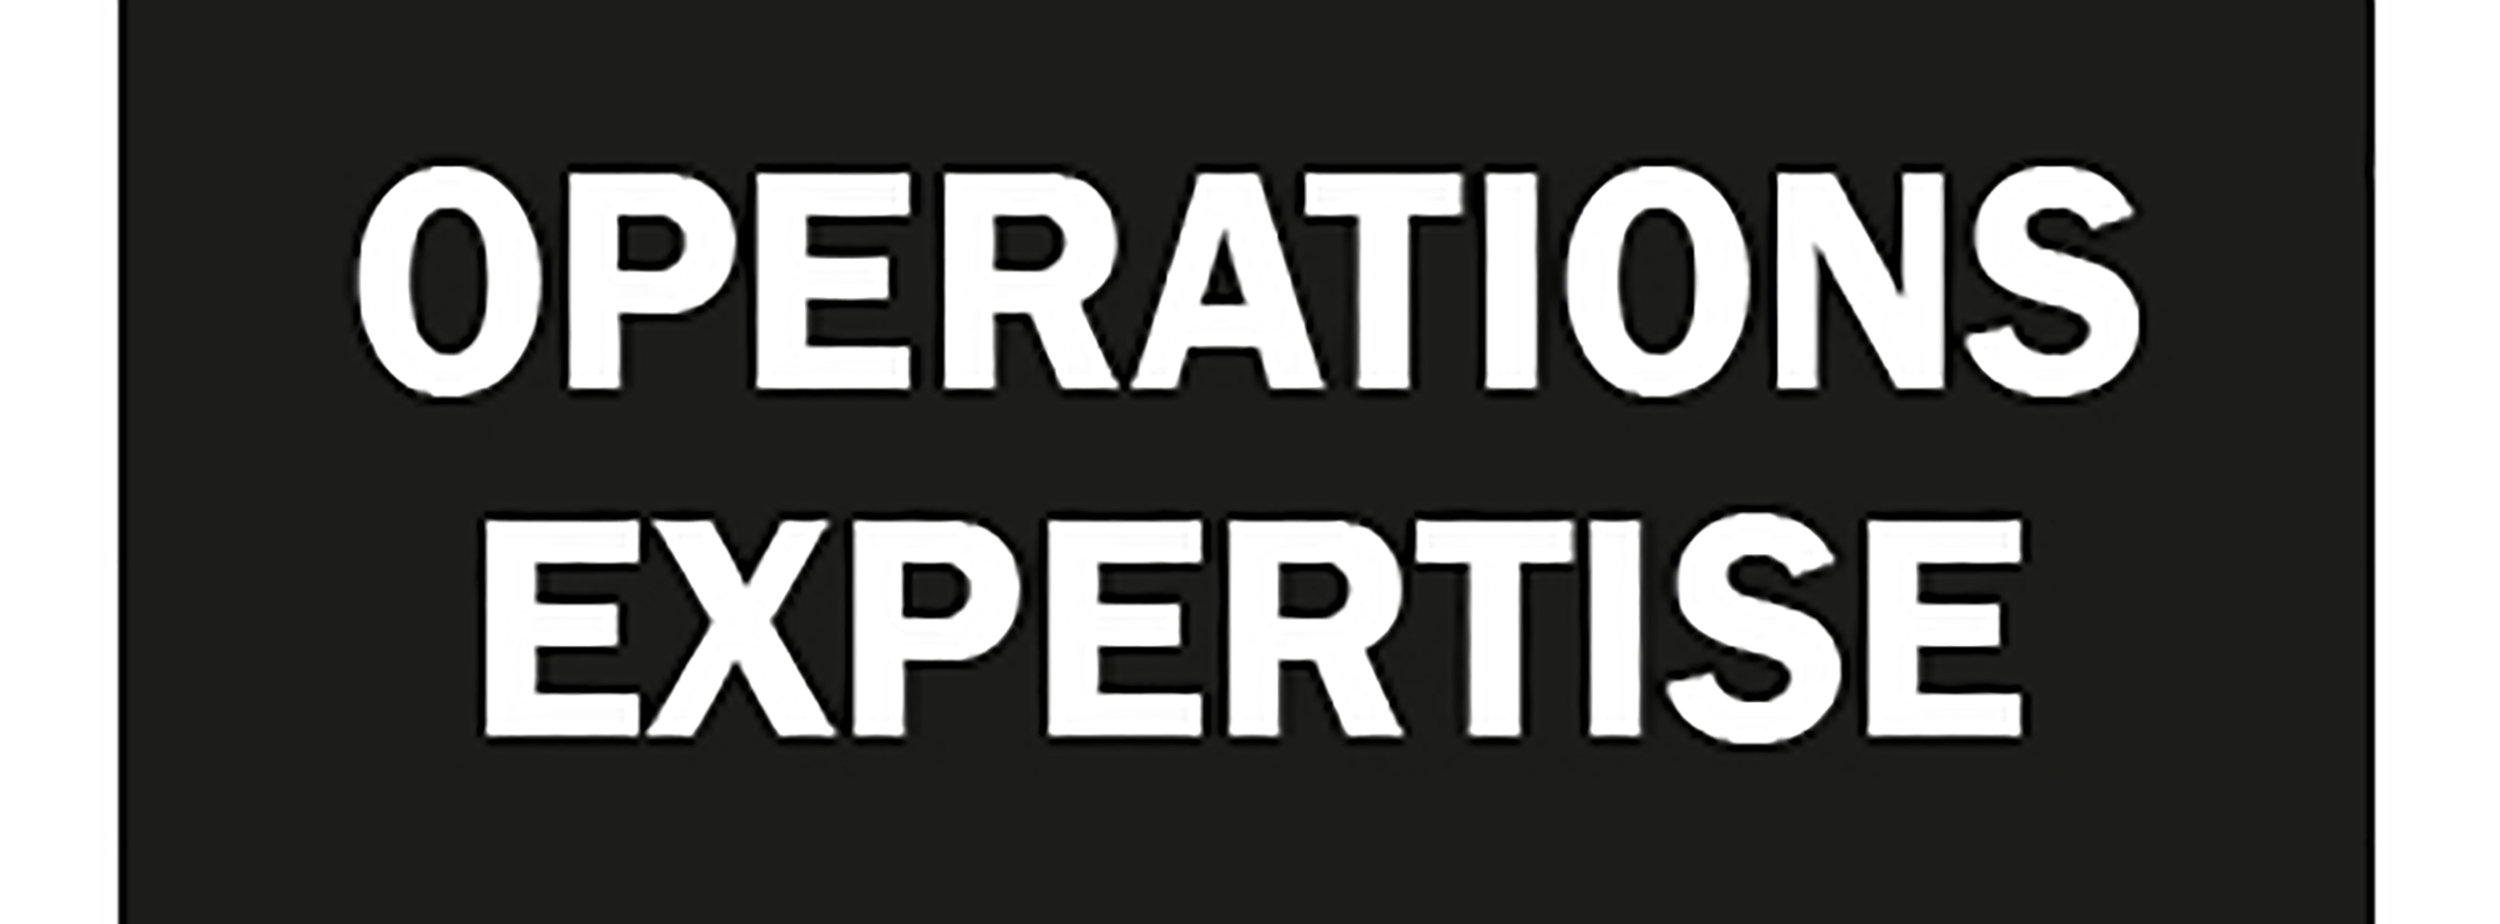 Operations Expertise BUTTON.jpg